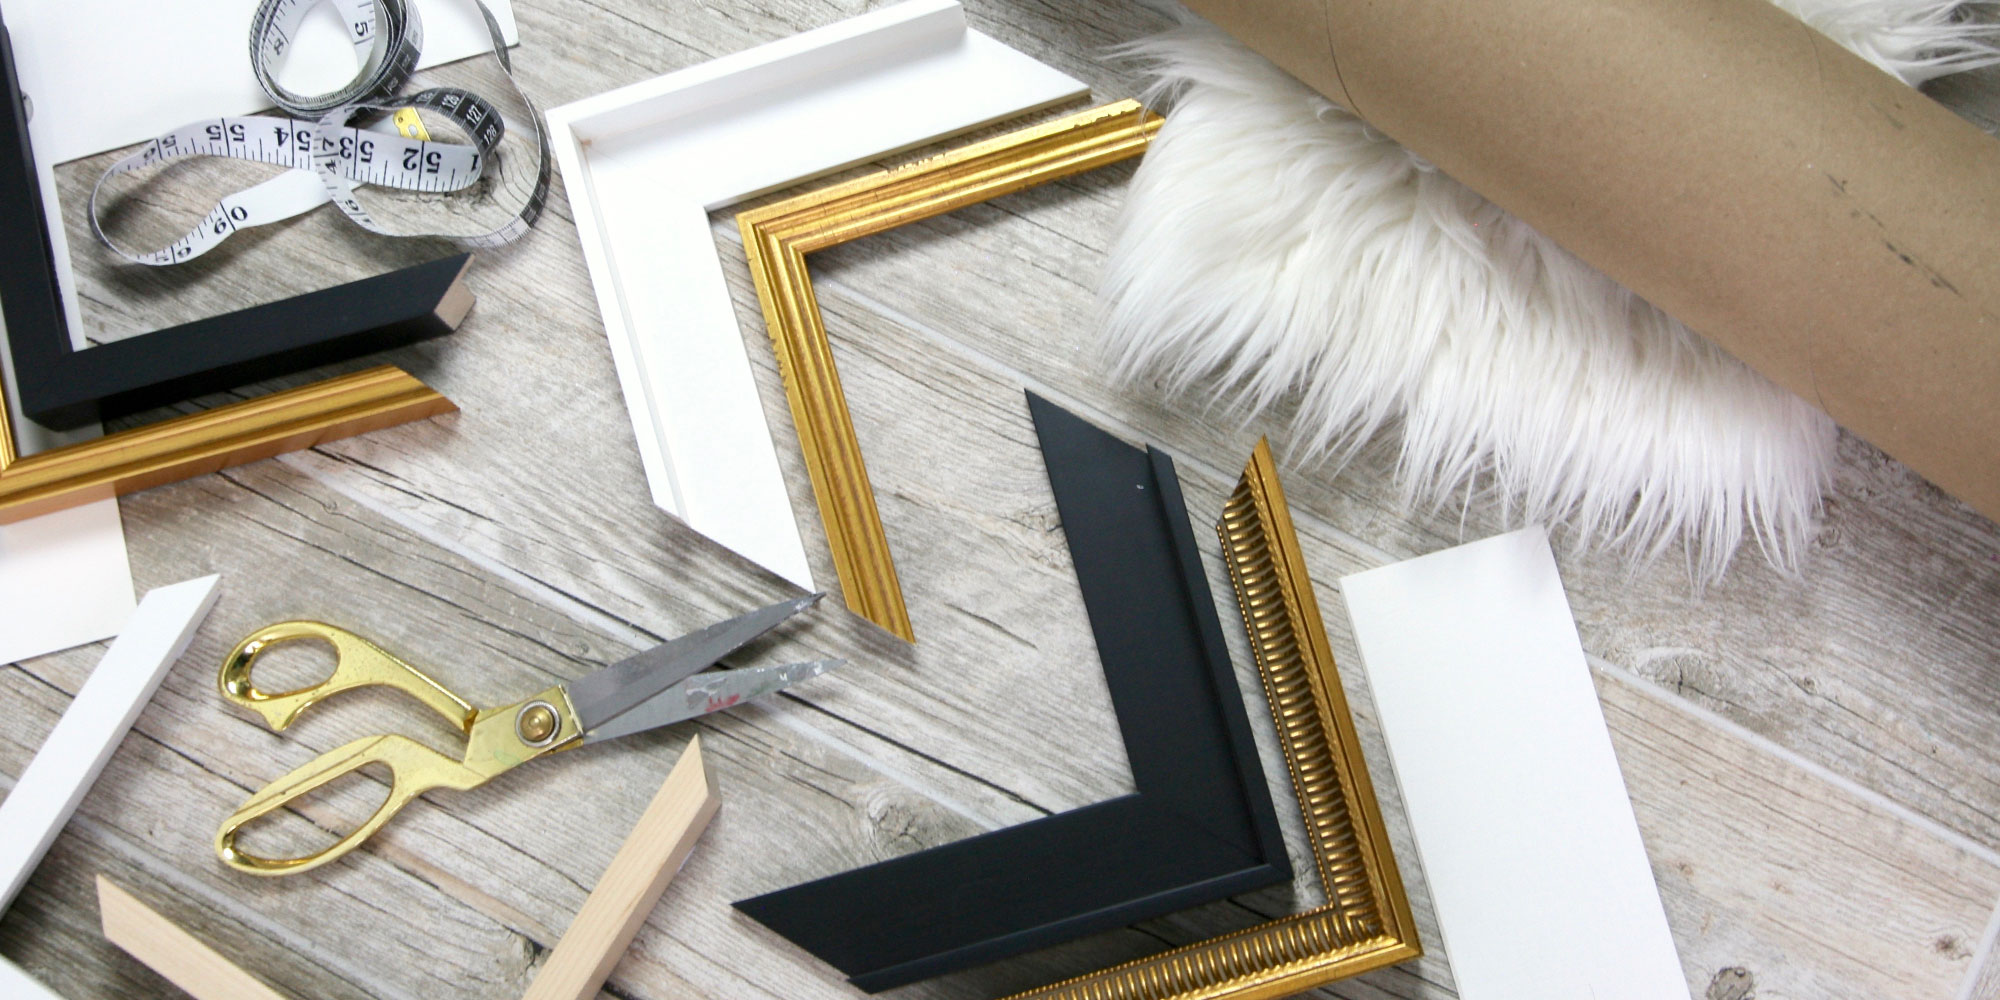 WHY IS YOUR FRAMING SO GOOD?